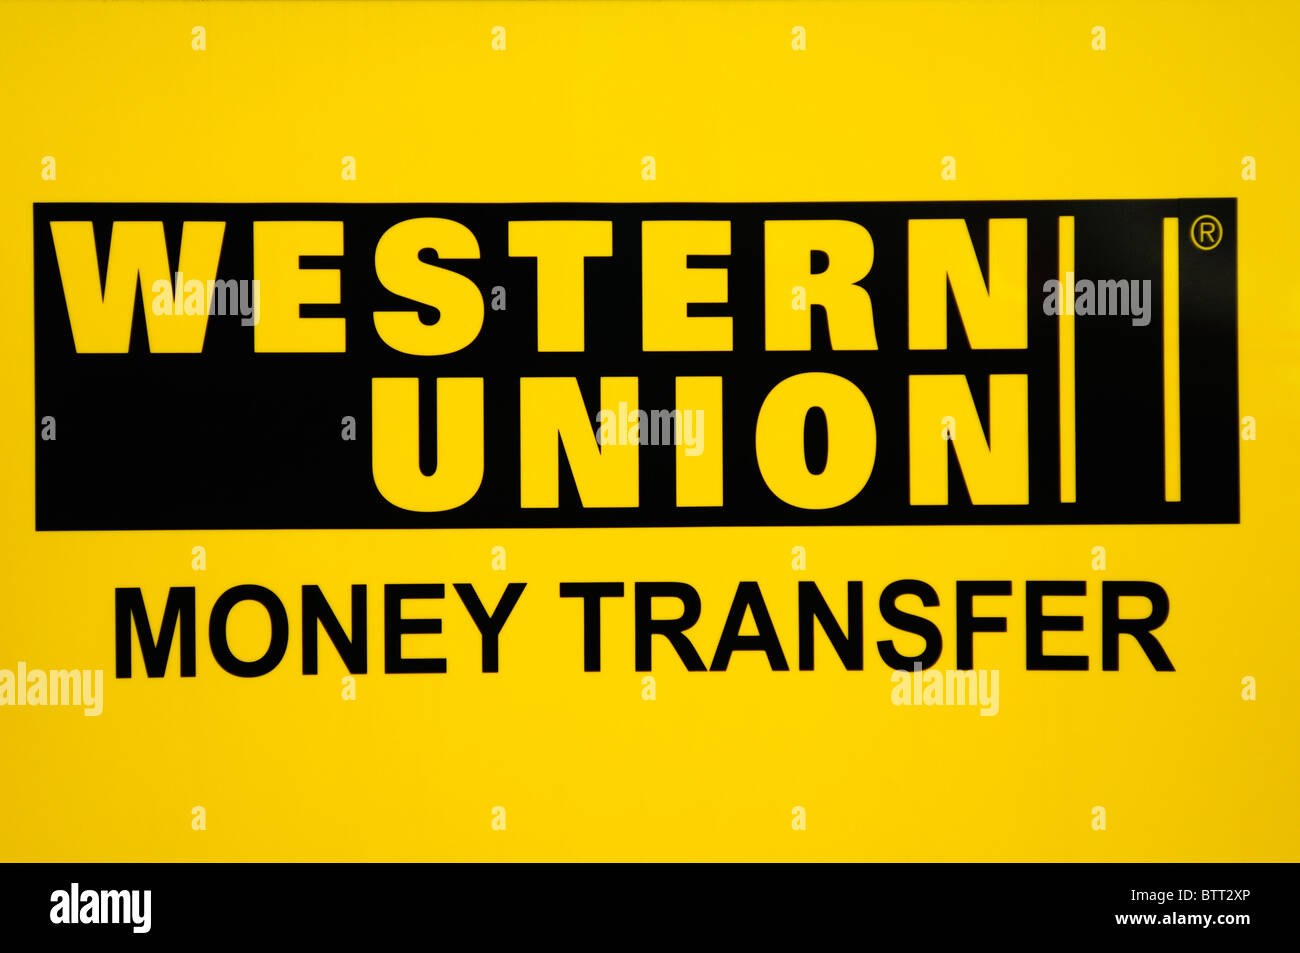 western union logo sign im genes de stock western union logo sign fotos de stock alamy. Black Bedroom Furniture Sets. Home Design Ideas